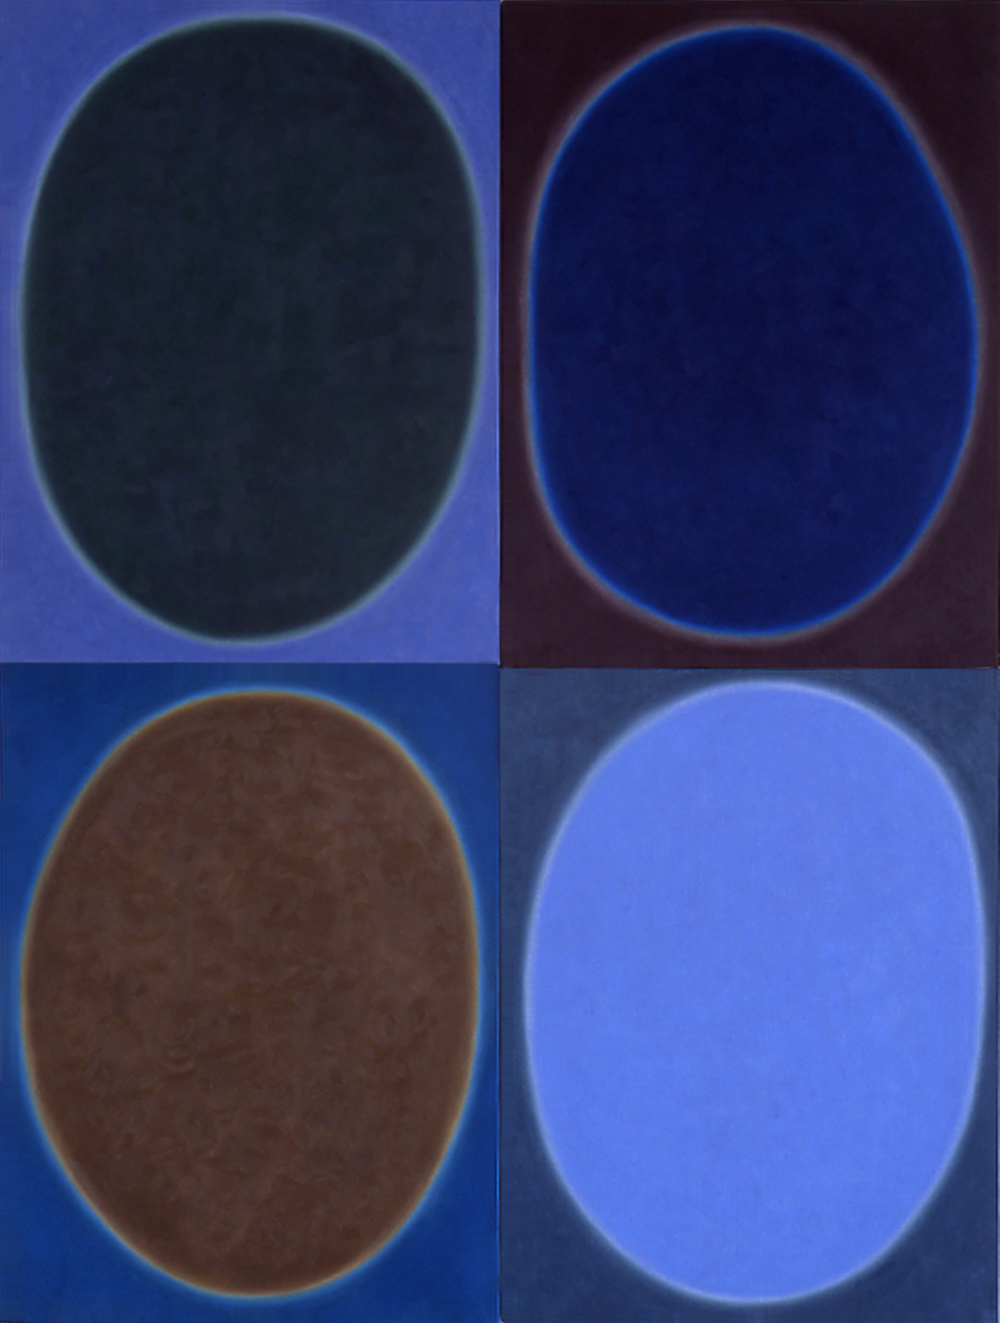 "Silent 12, oil on canvas, 2002, series of 4 panels W18"" x H24"" each, total format W36"" x H48"". Private collection."